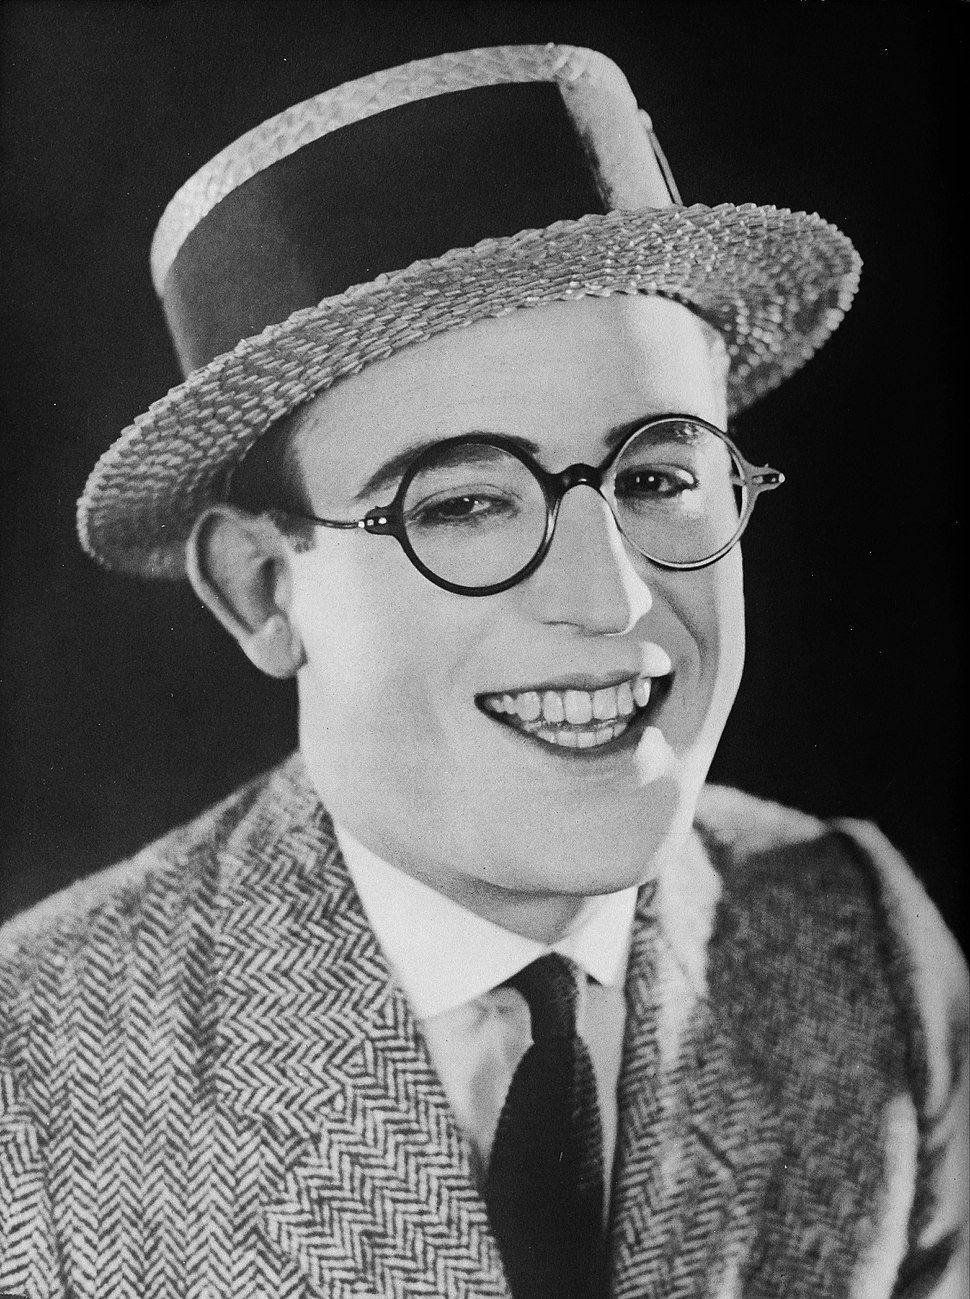 Harold Lloyd - A Pictorial History of the Silent Screen